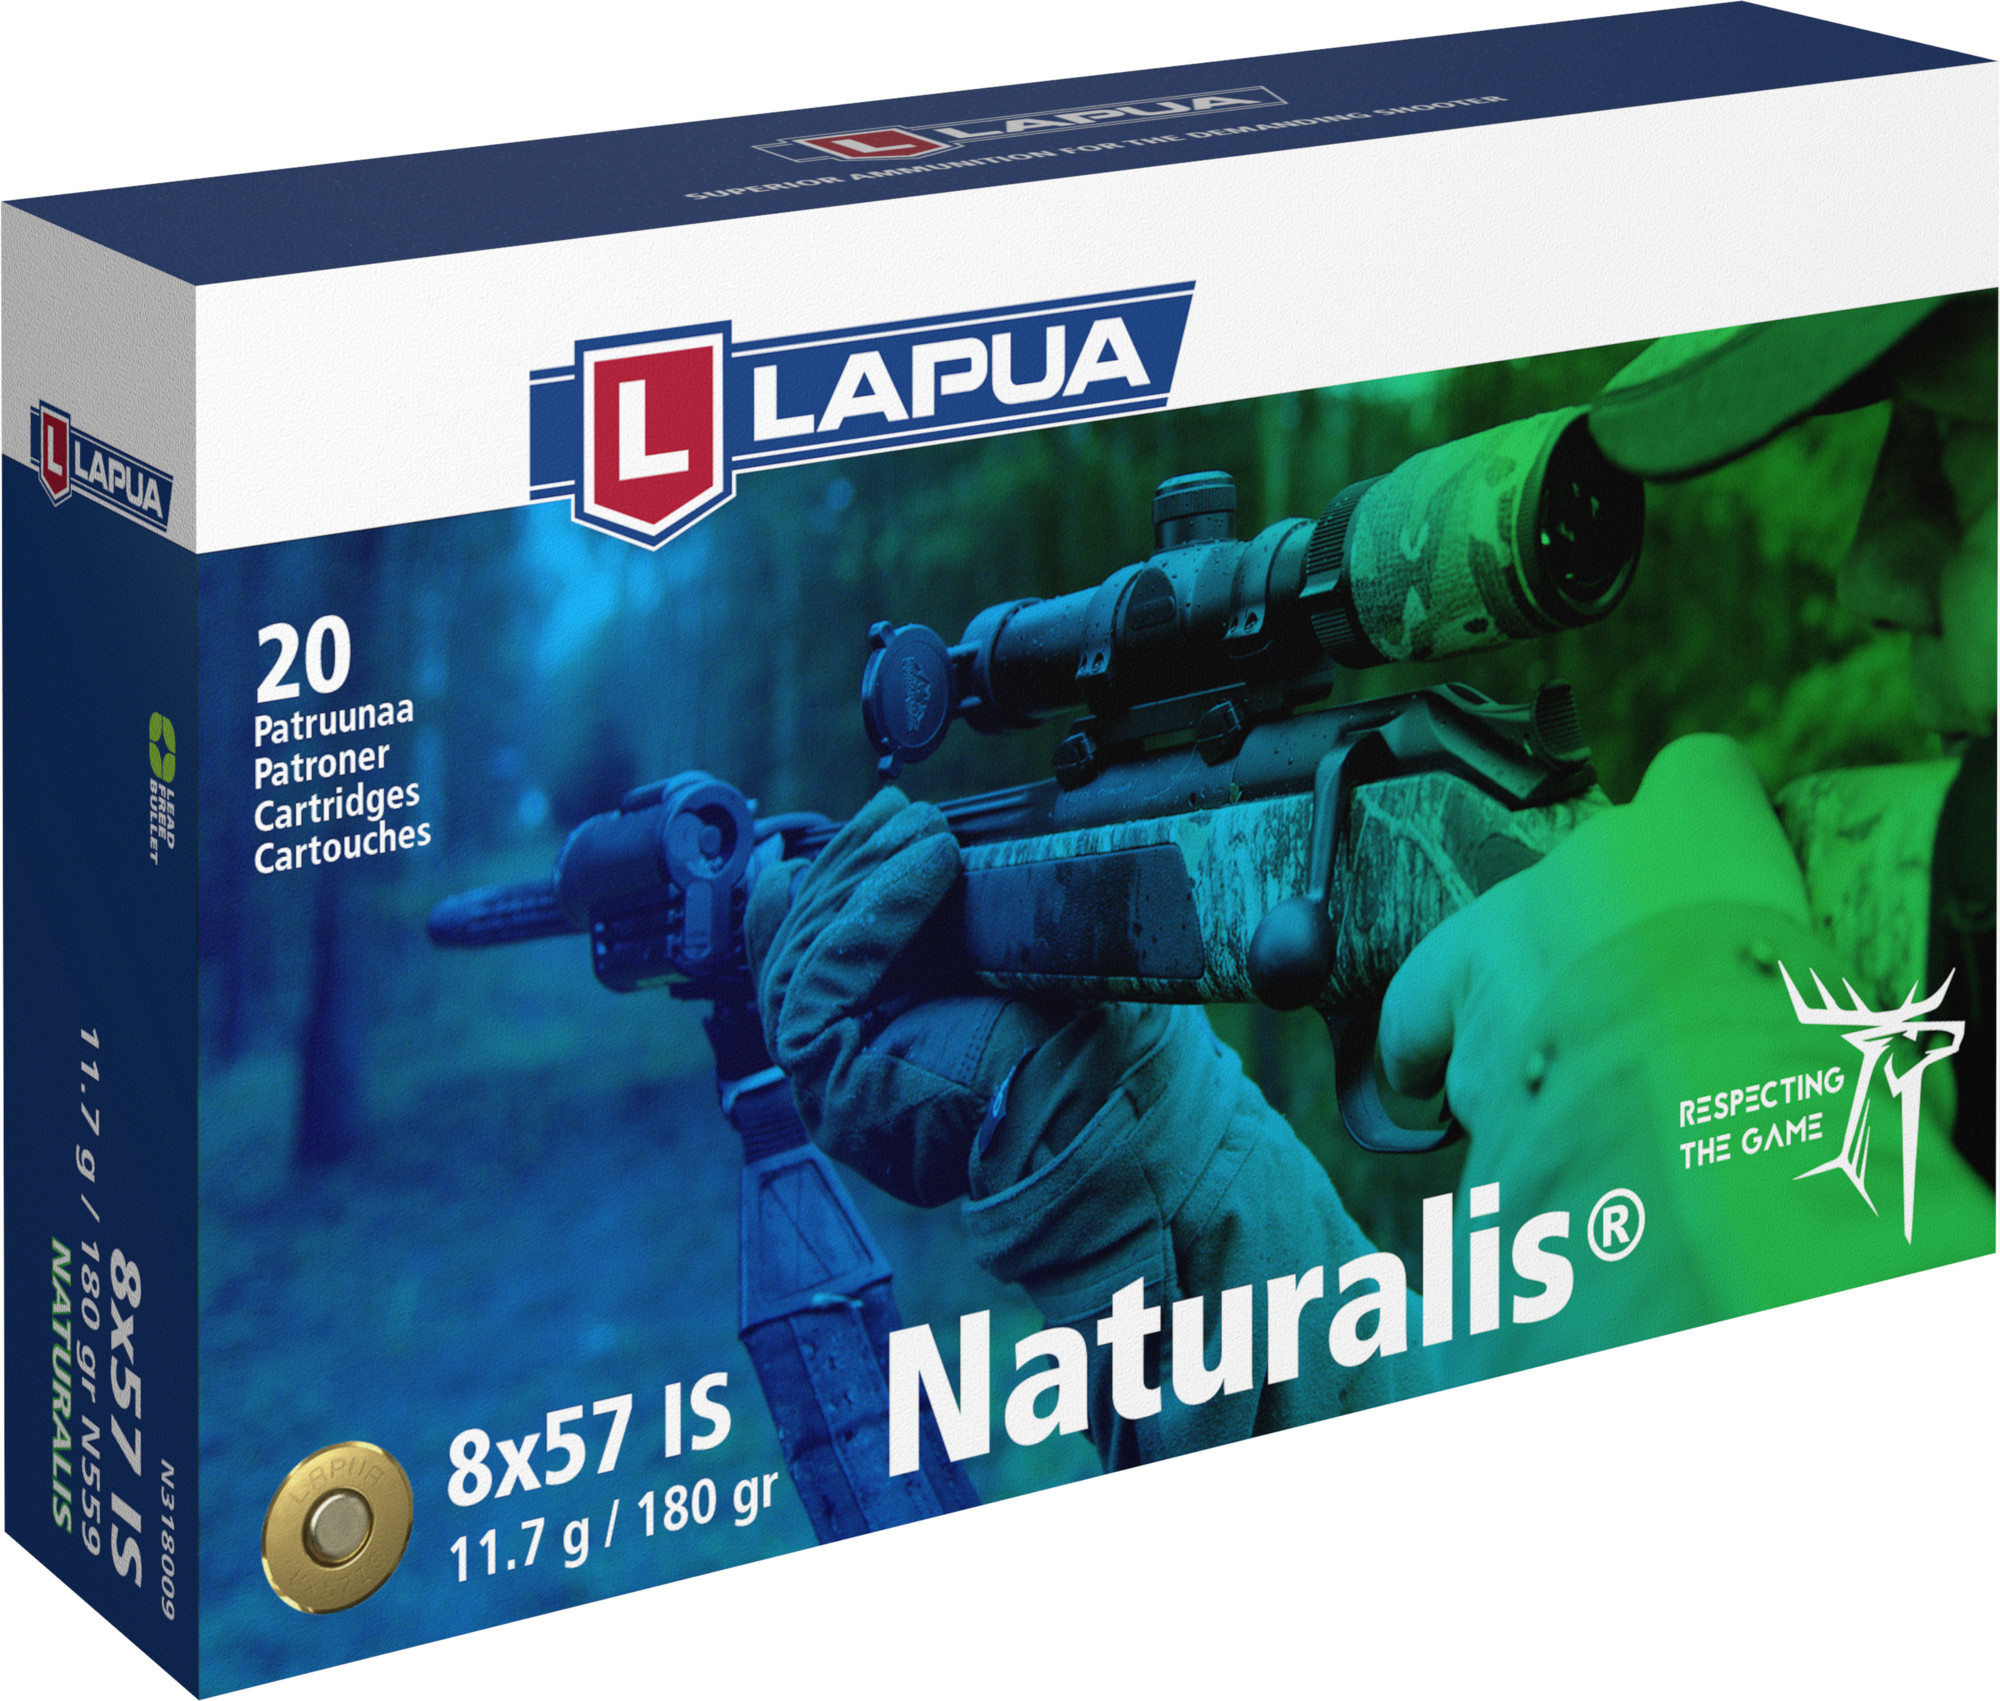 Lapua 8x57 IS 11,7g Naturalis  N559